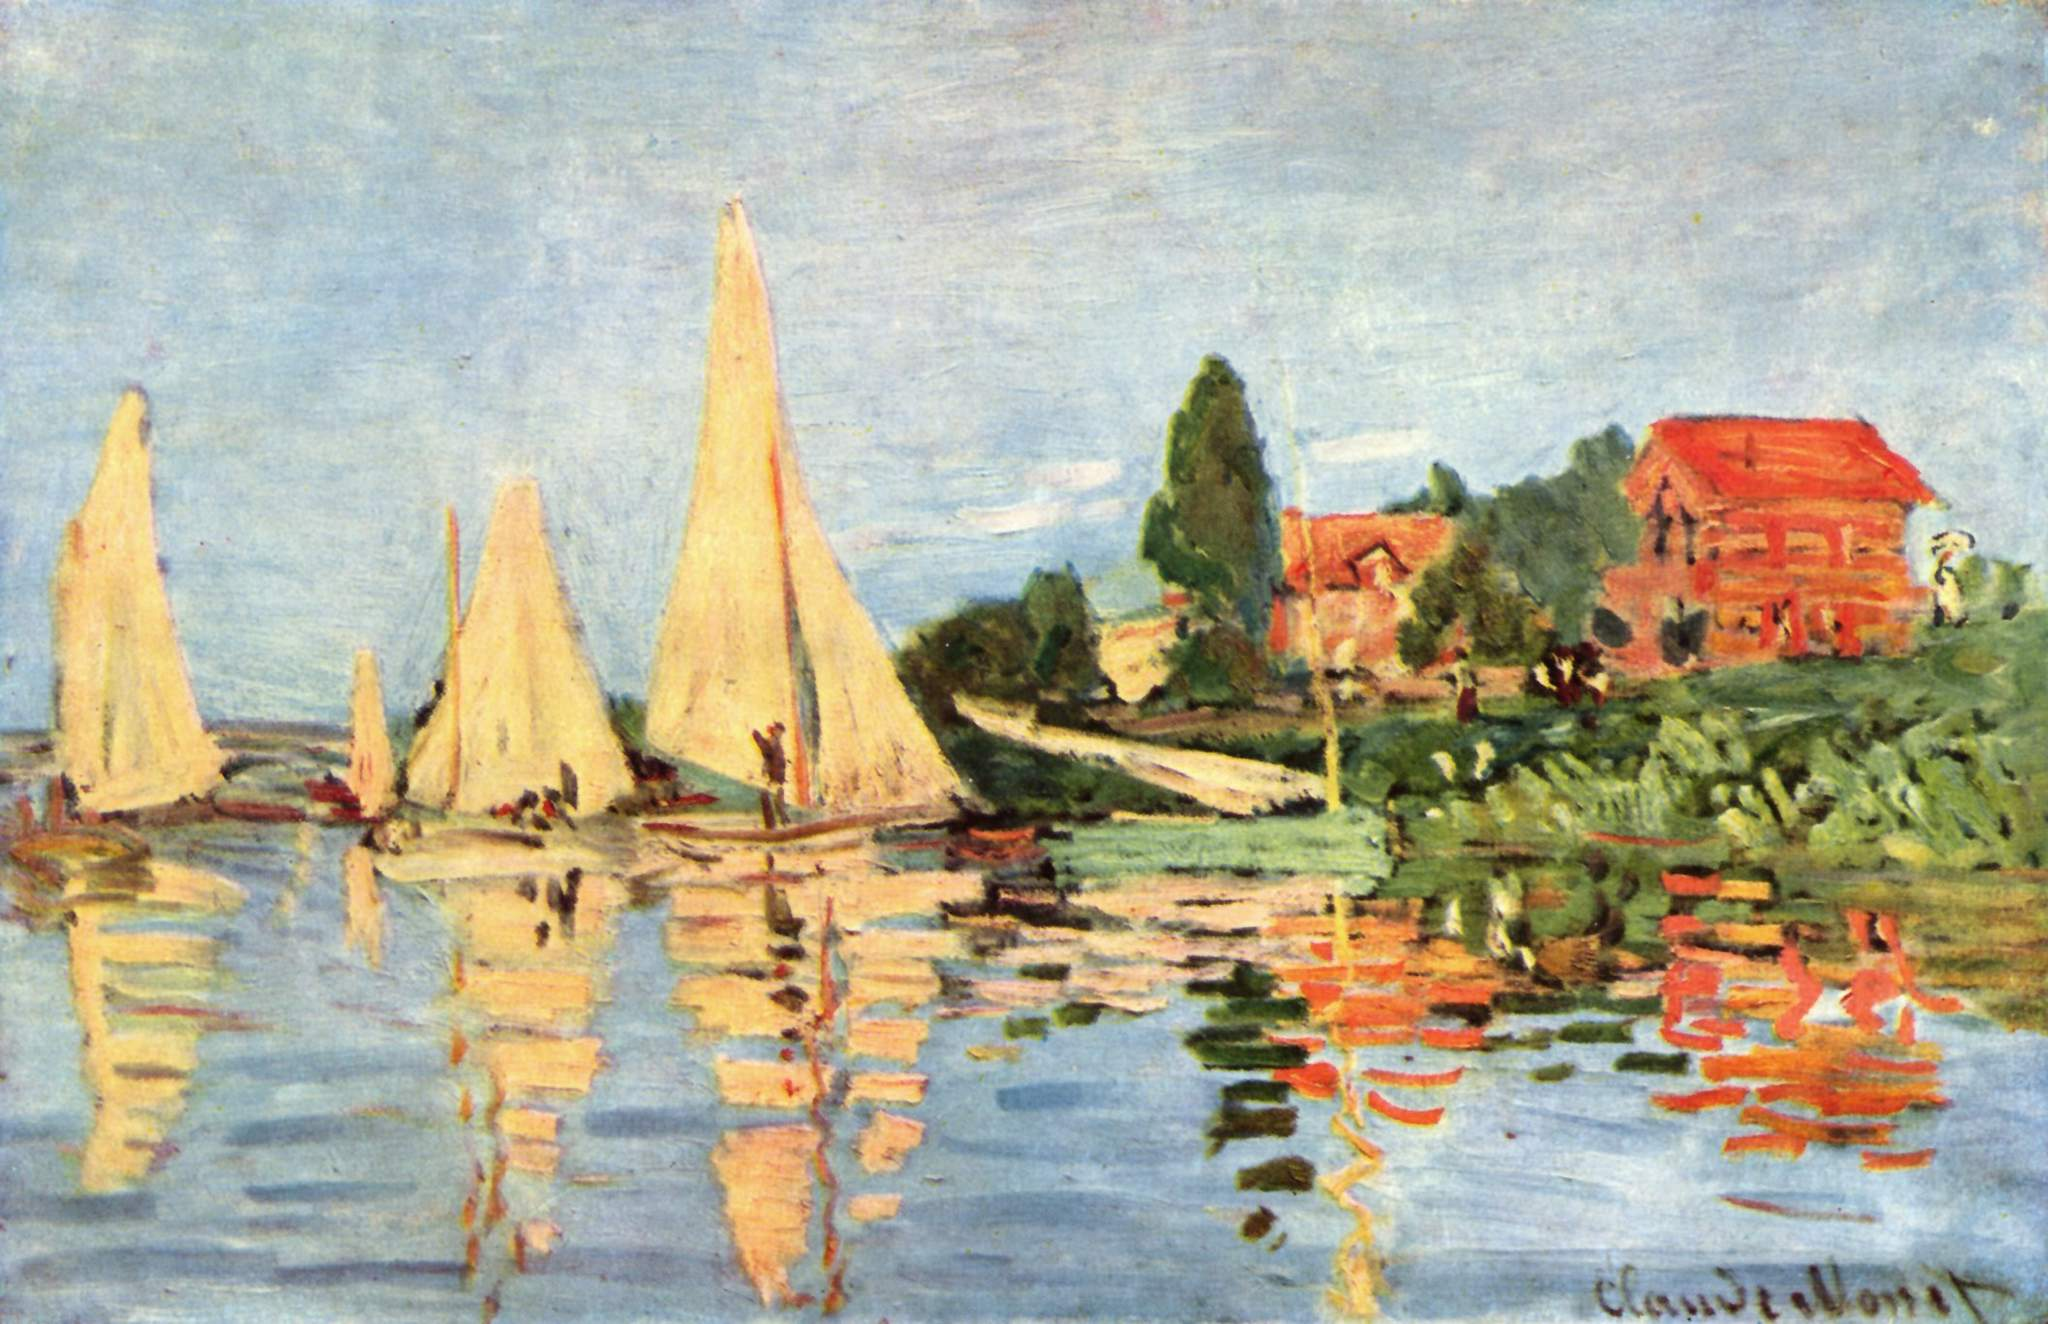 Pinturas De Claude Monet File Claude Monet 042 Jpg